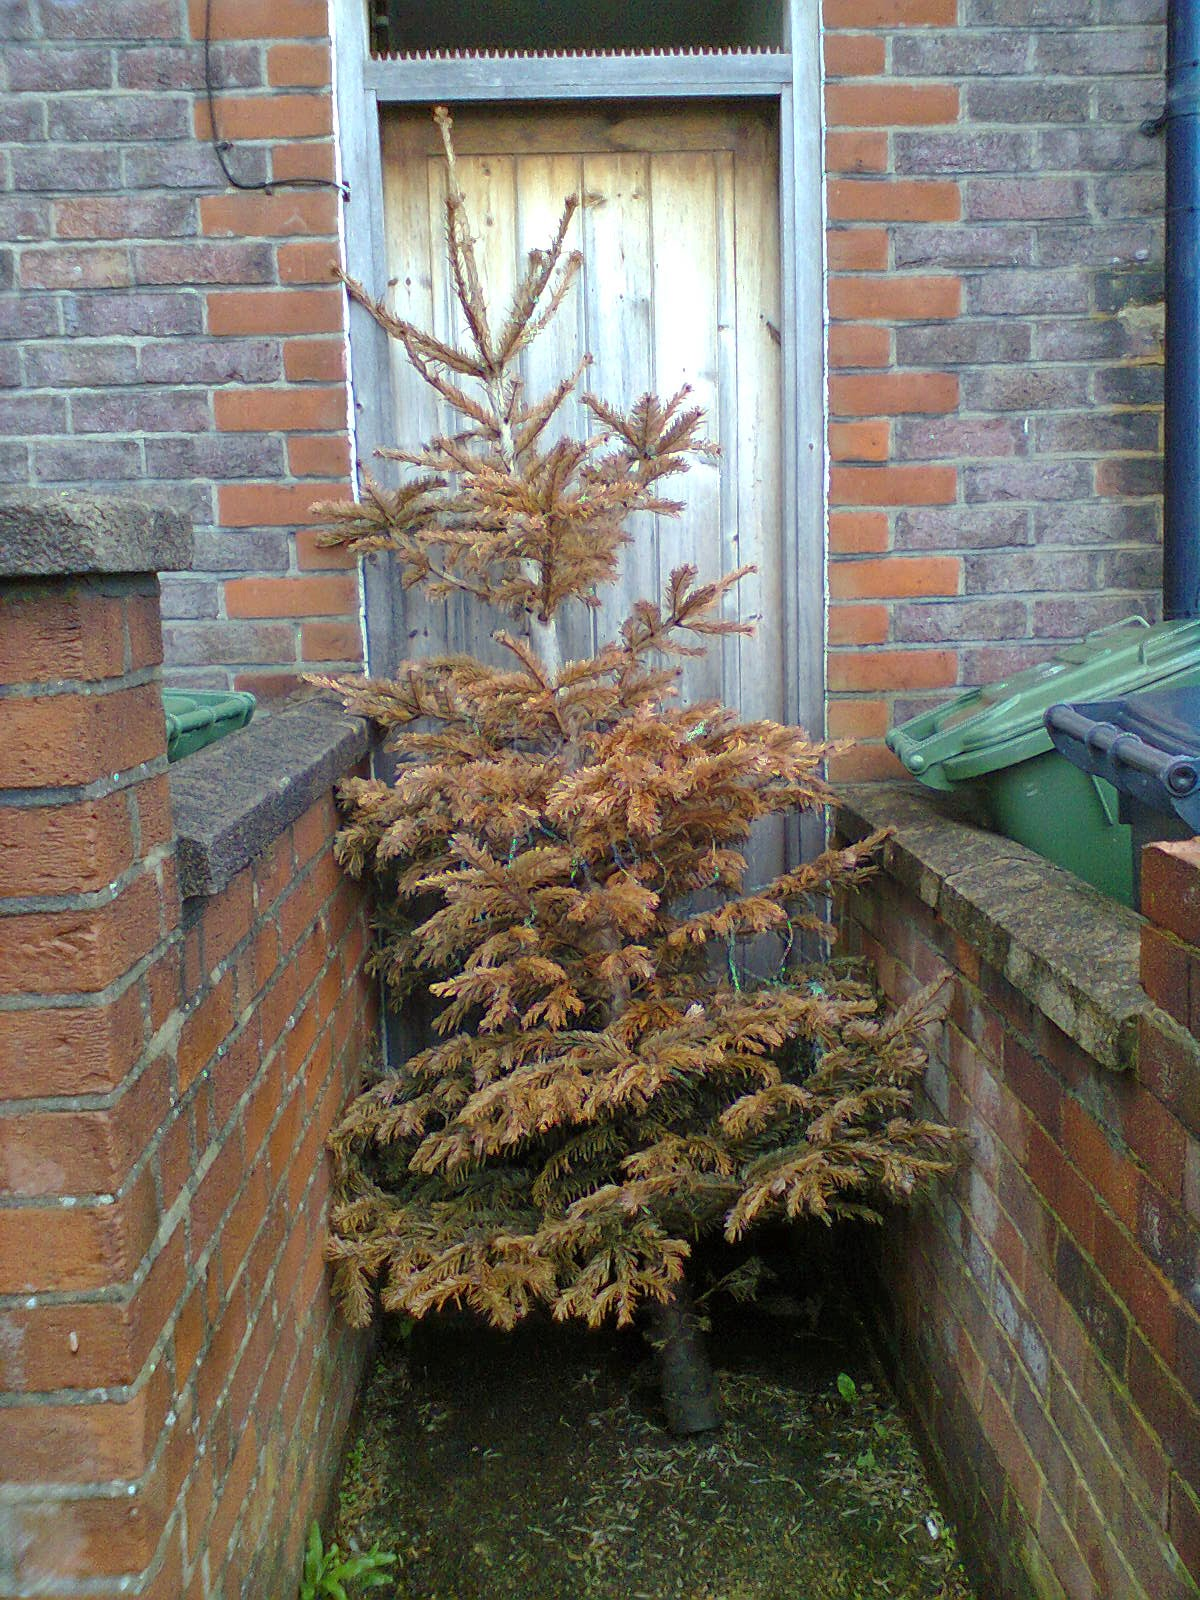 A browned off Christmas Tree in Luton. In April